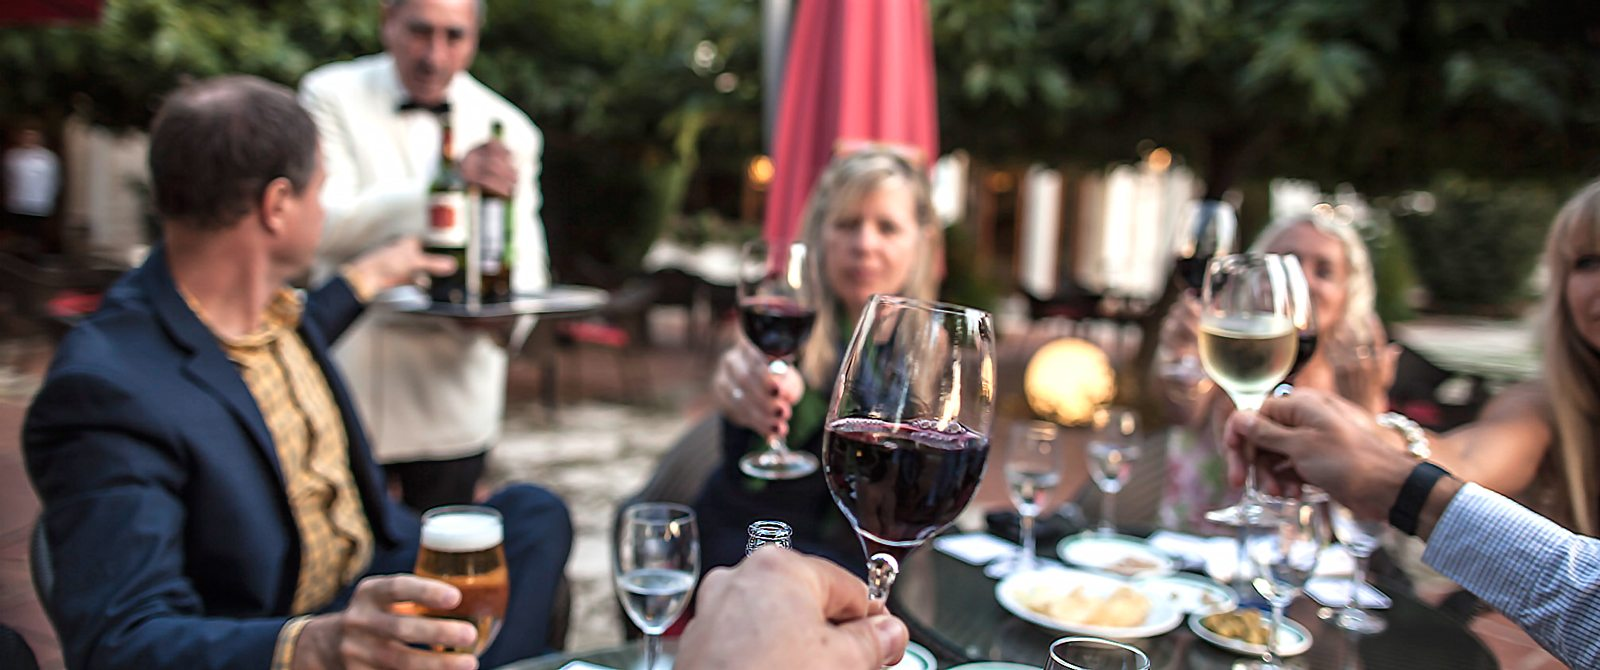 Sip on the Spanish wines on your Trek Travel trip to Spain